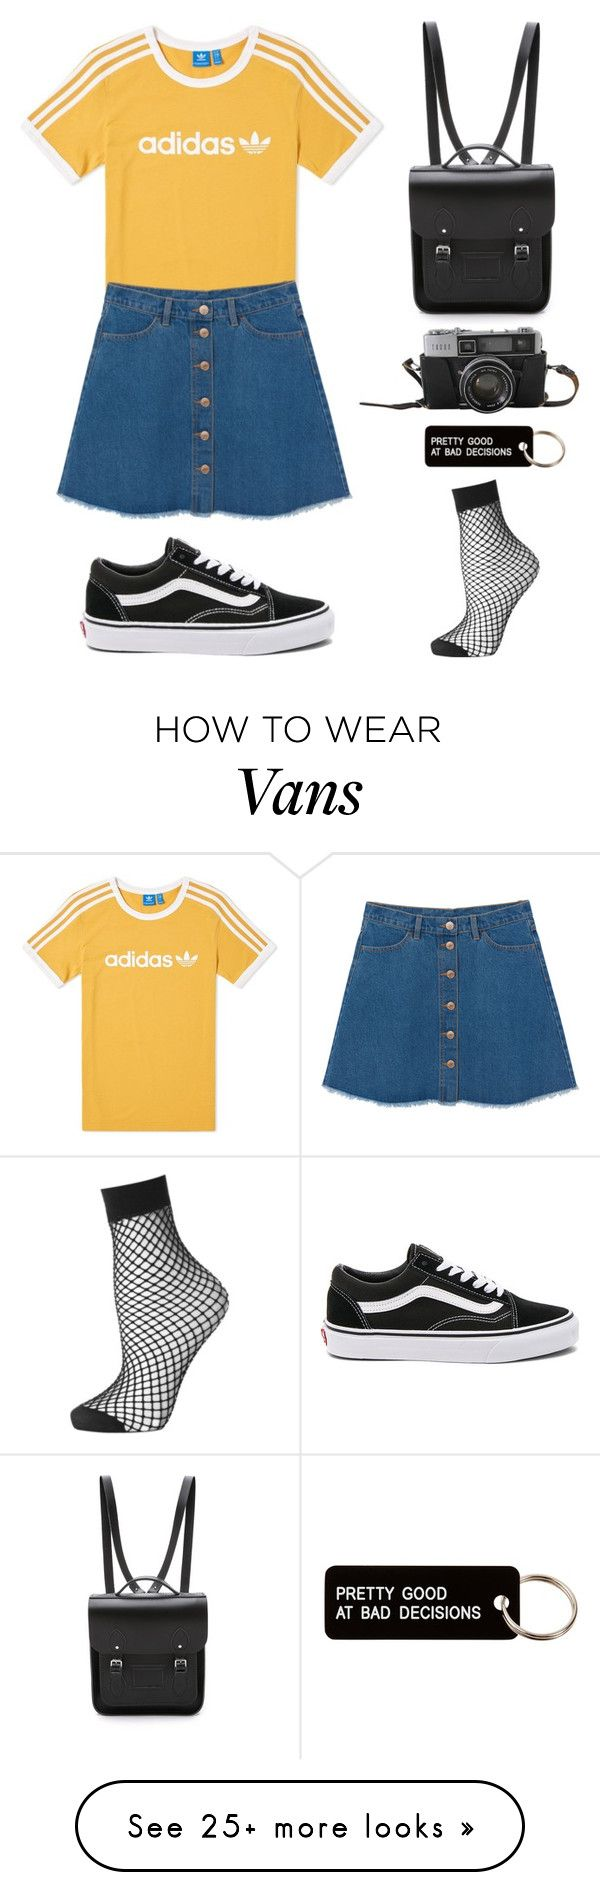 """Bad Decisions"" by yoitsmeg87 on Polyvore featuring adidas, Monki, Vans, The Cambridge Satchel Company, Topshop and Various Projects"